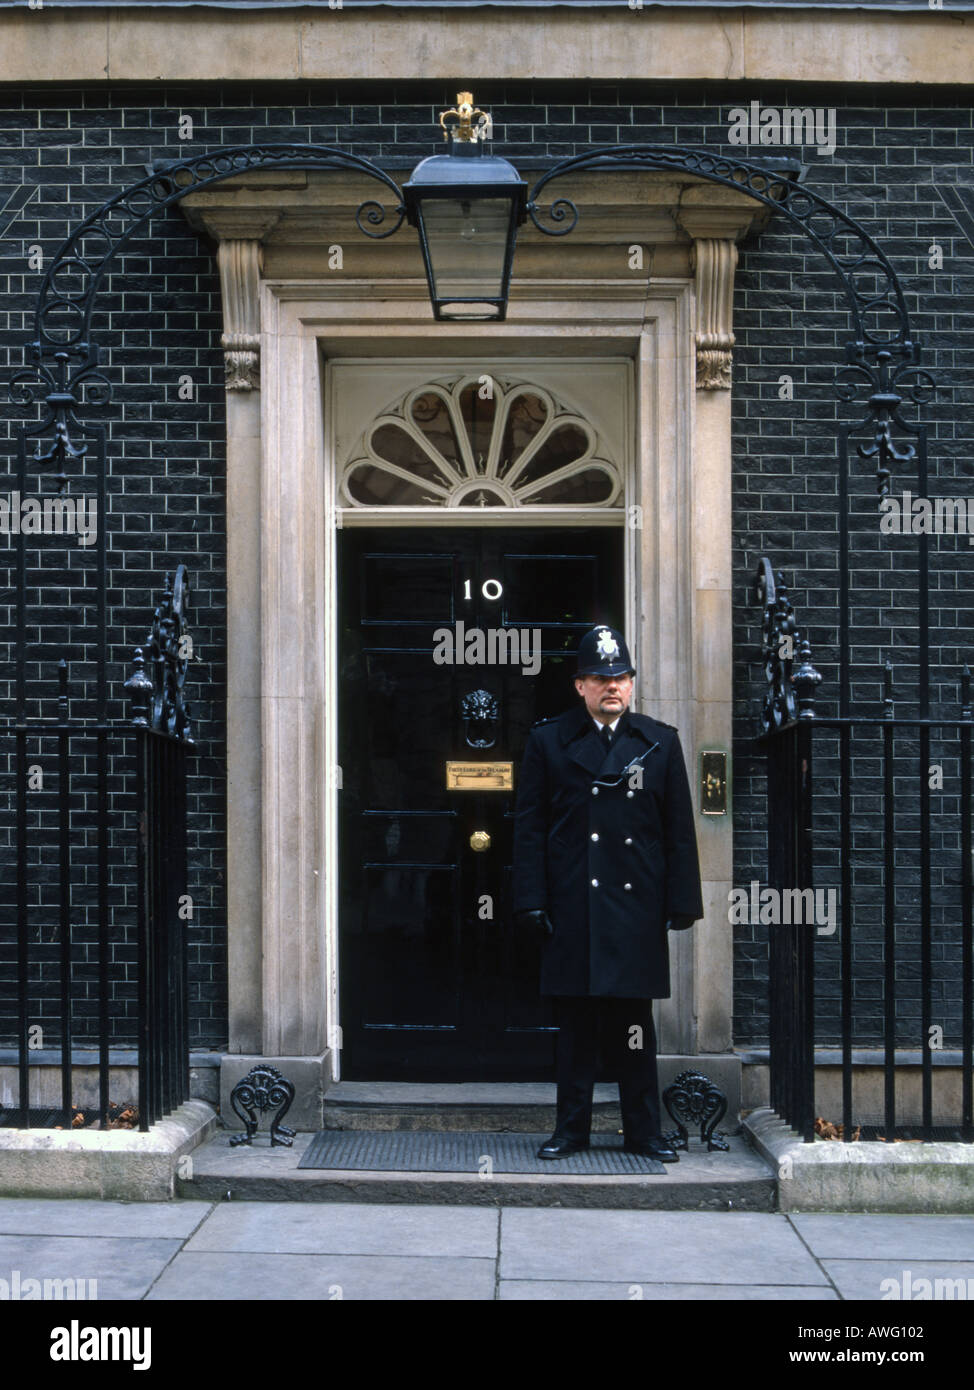 Britains most famous front door 10 downing st - Stock Image